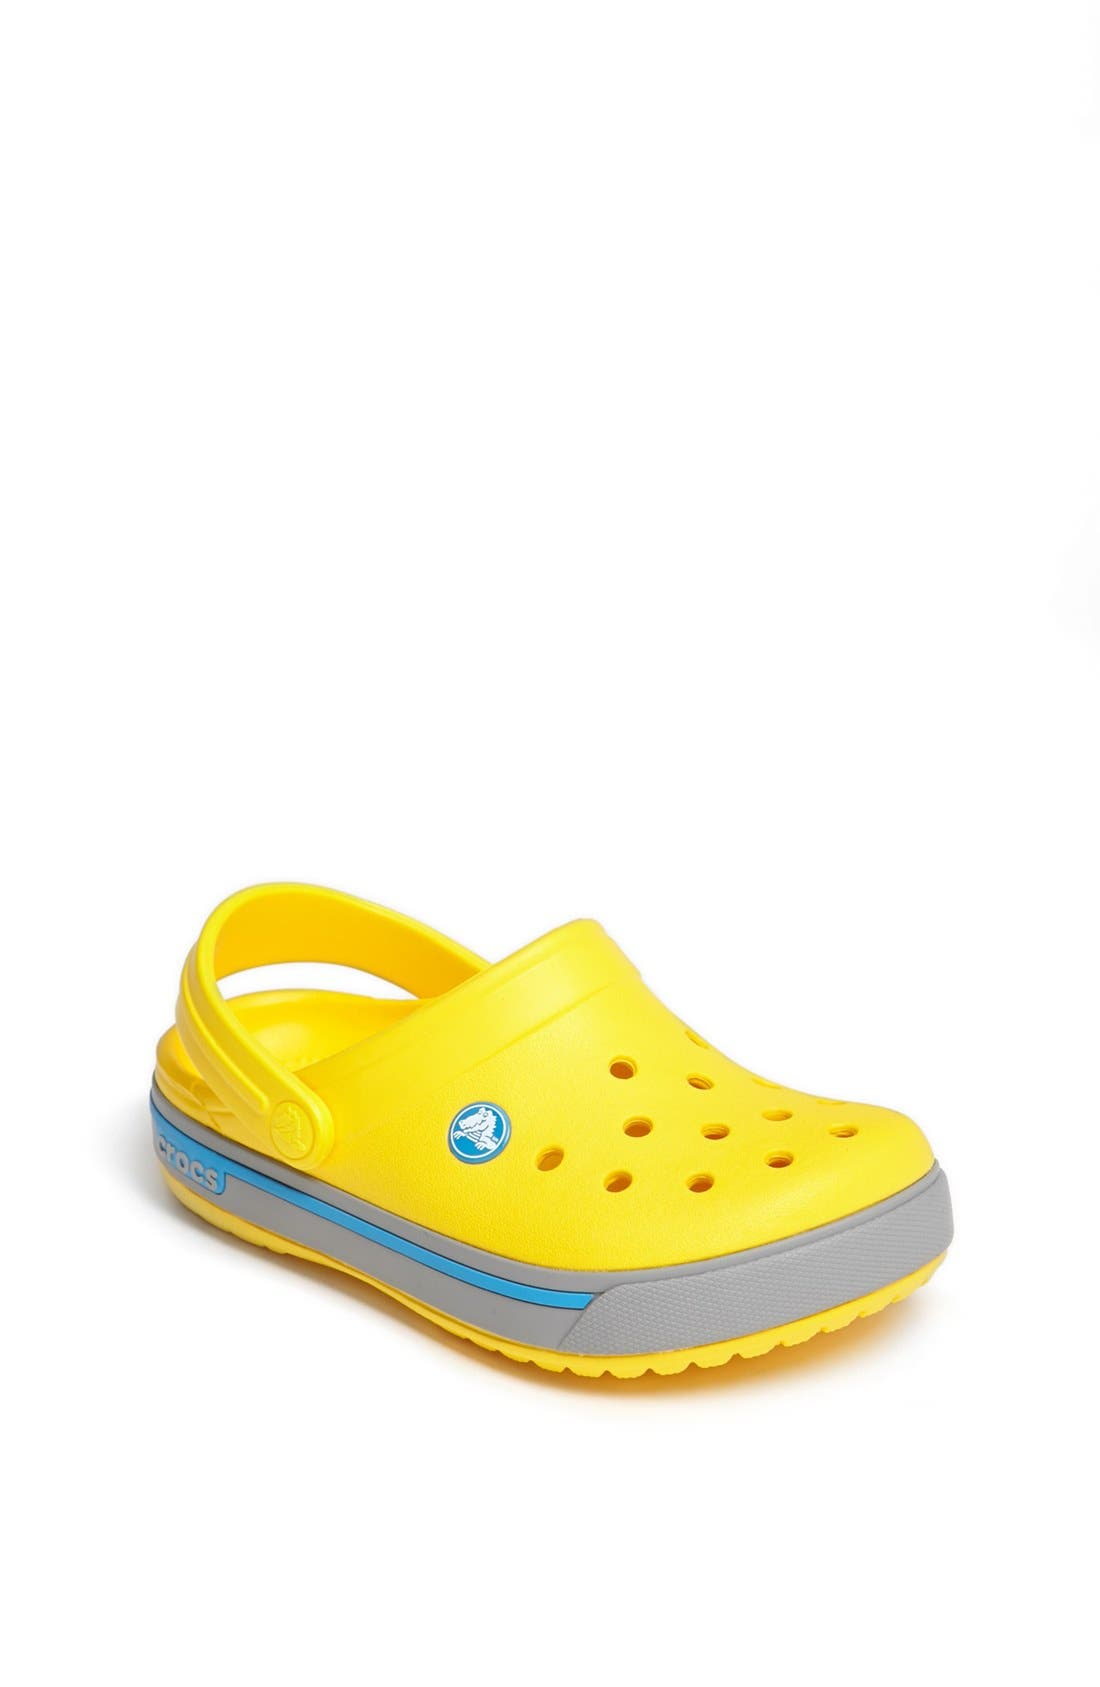 Main Image - CROCS™ 'Crocband II.5' Slip-On (Walker, Toddler & Little Kid)